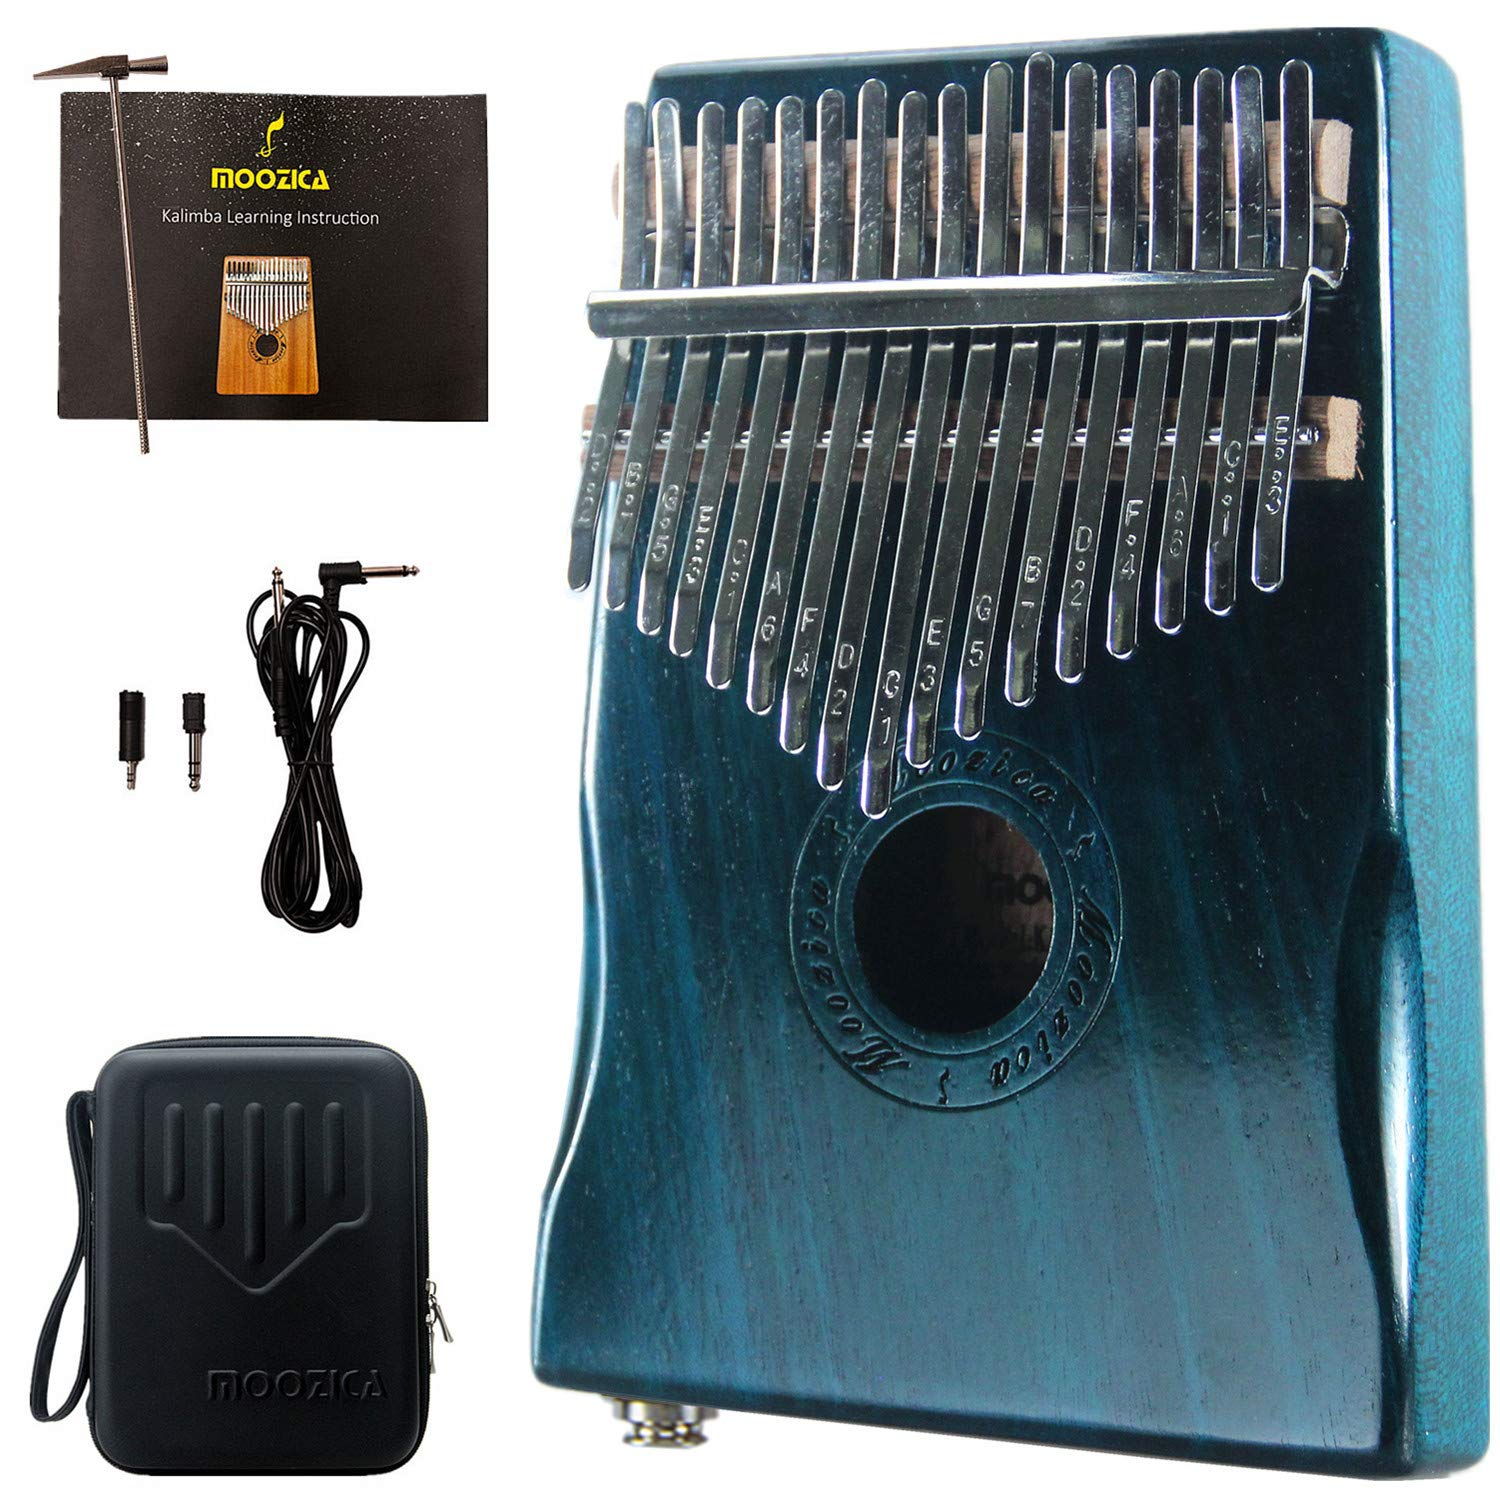 Moozica 17 Keys Mahogany Tone Wood EQ Kalimba, Electric Finger Thumb Piano Built-in Hi-Fi Pickup With 6.35mm Audio Interface(Dark Green) by Moozica